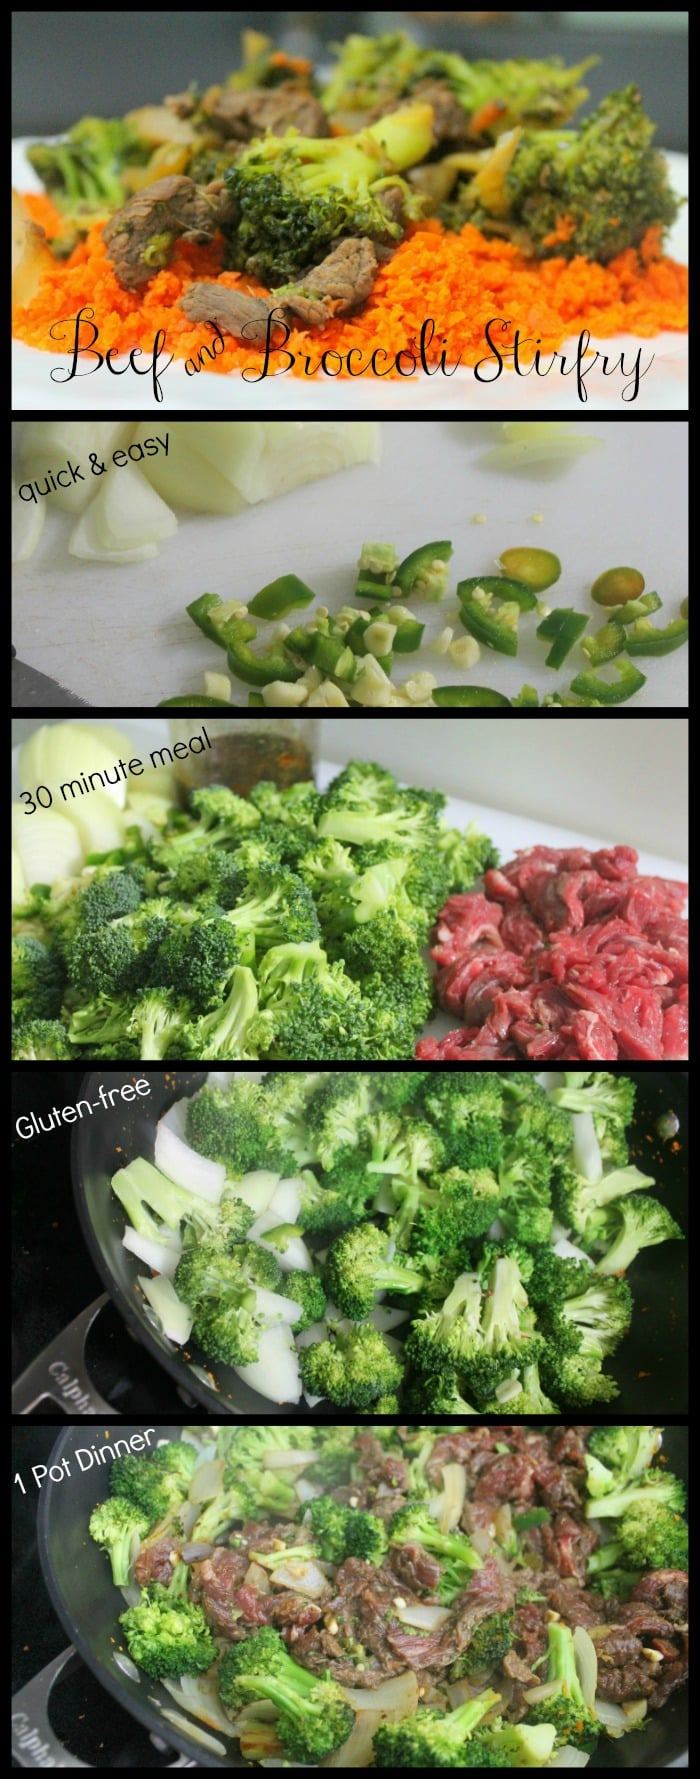 Quick Easy Meals: Beef and Broccoli Stirfry Recipe - www.realthekitchenandbeyond.com